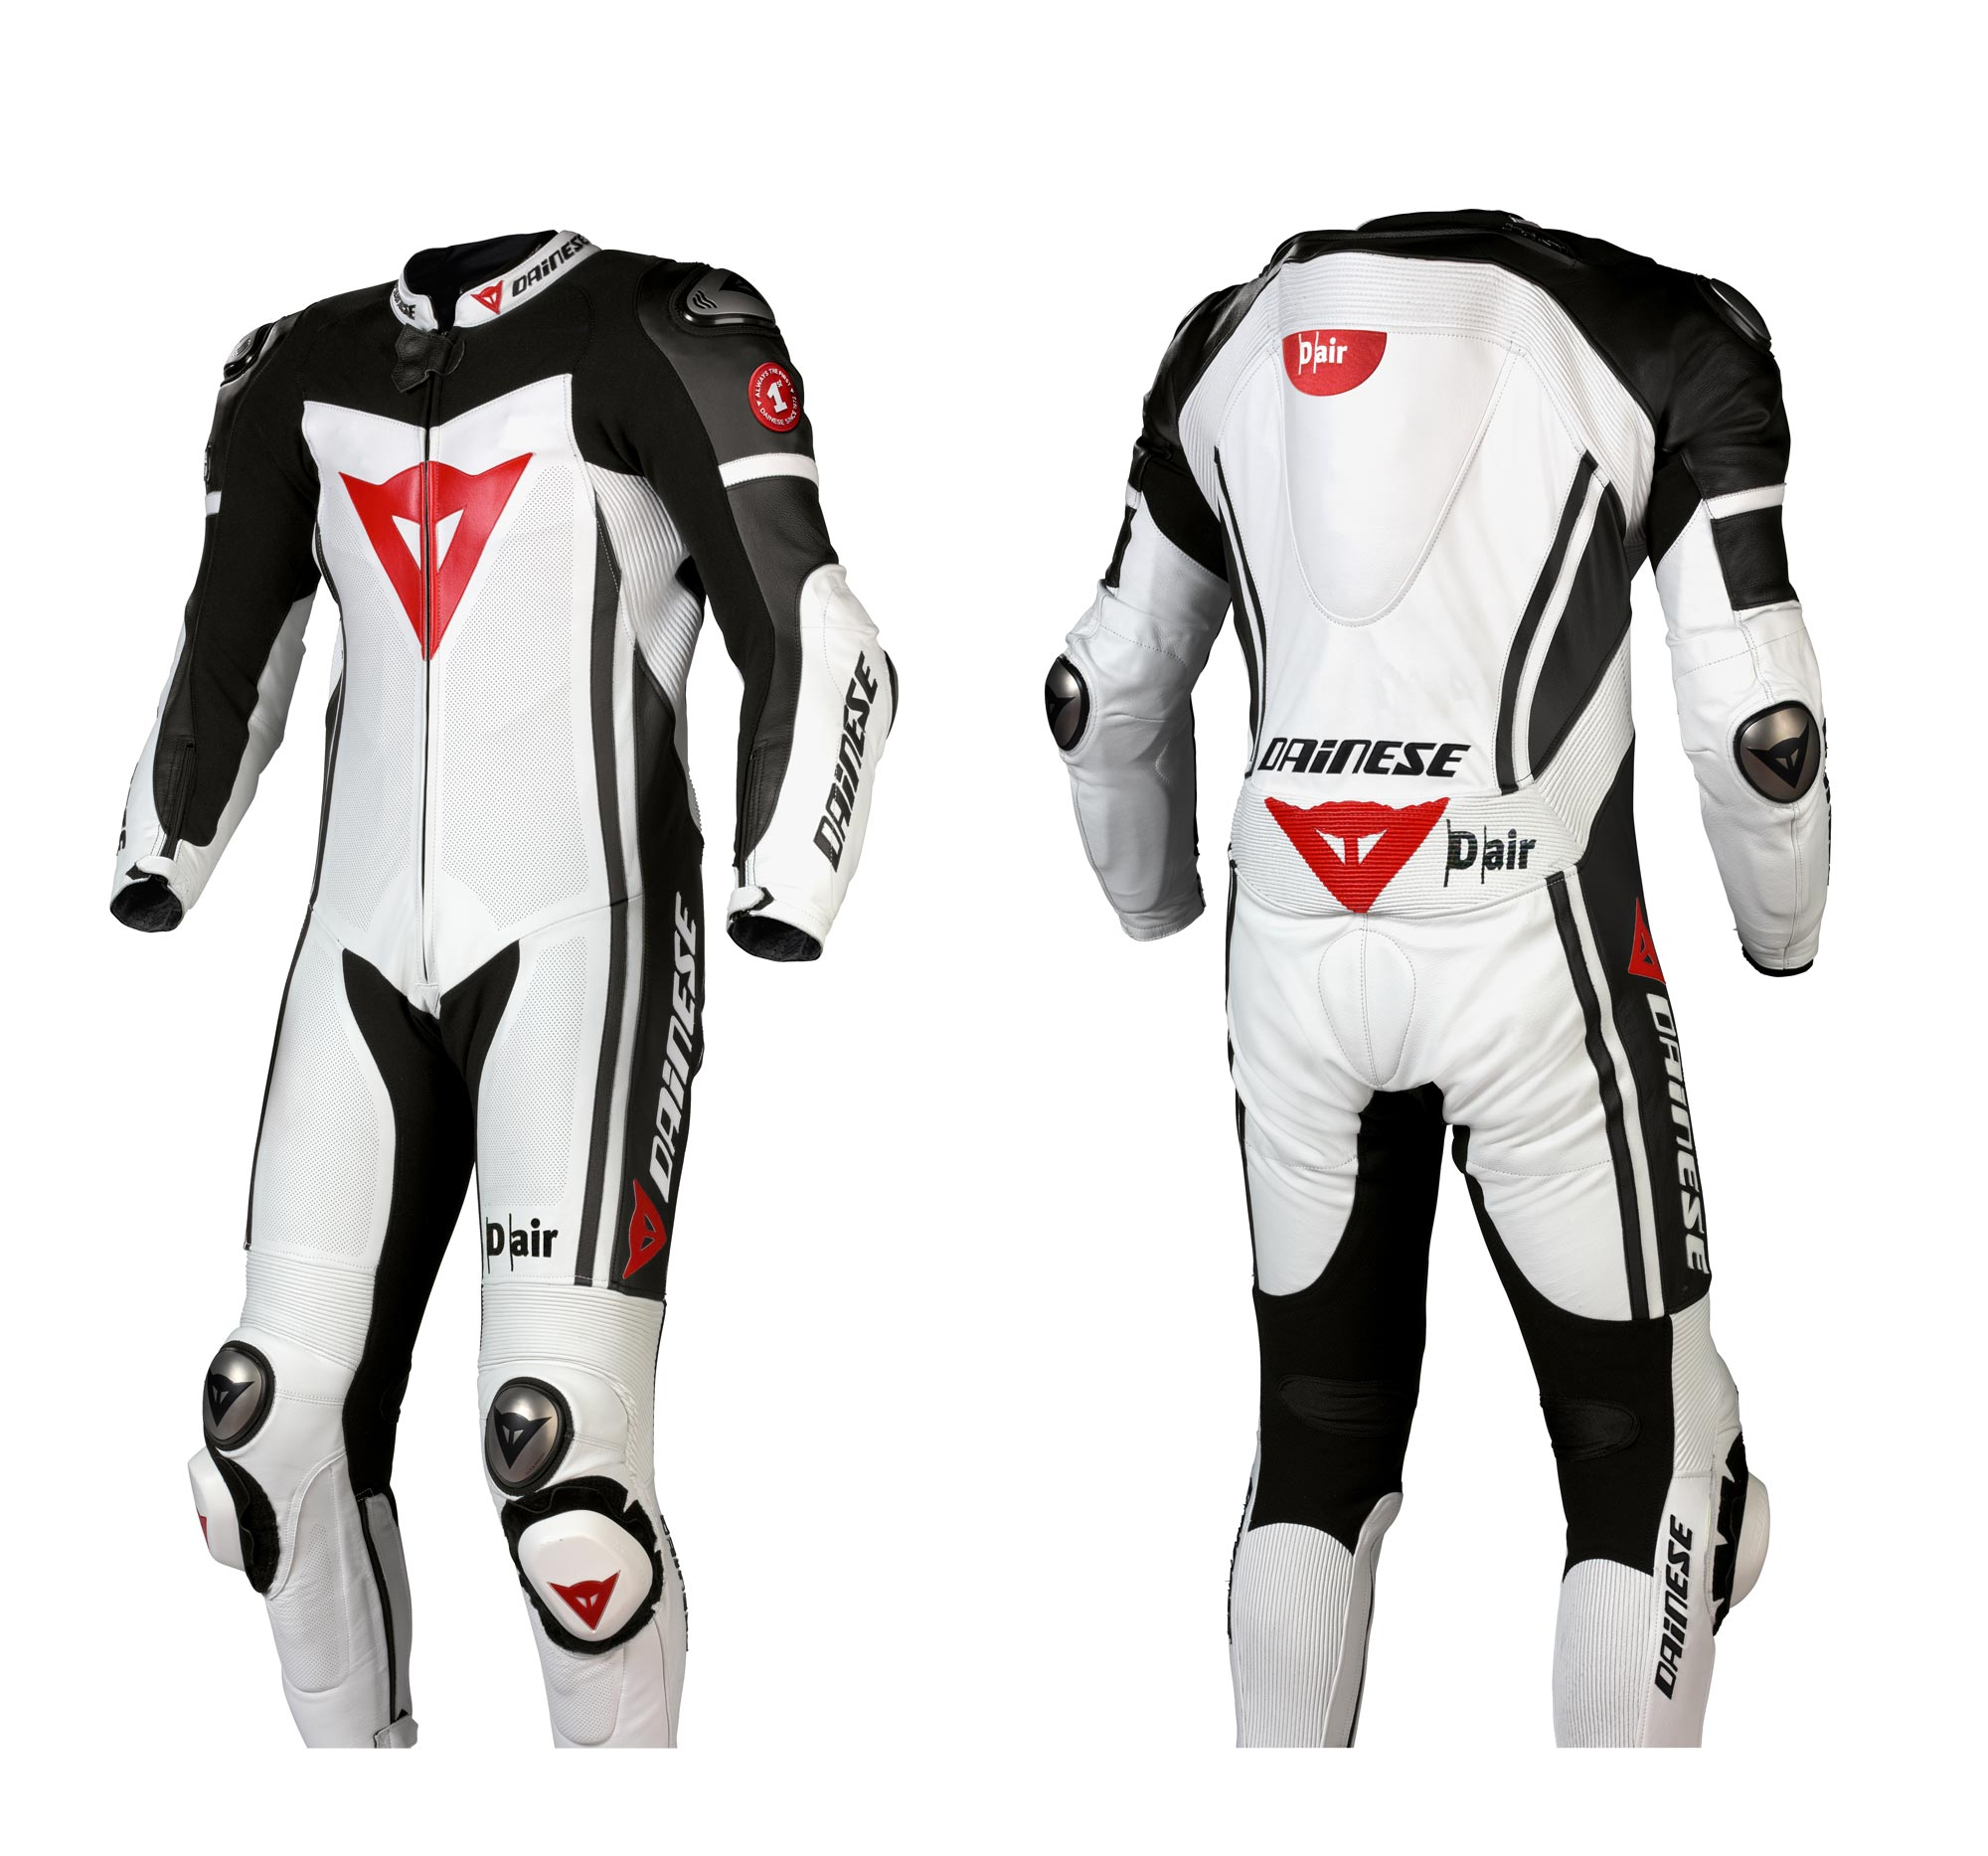 Malaysia Online Shopping Amp Auction Lelong Suit Racing